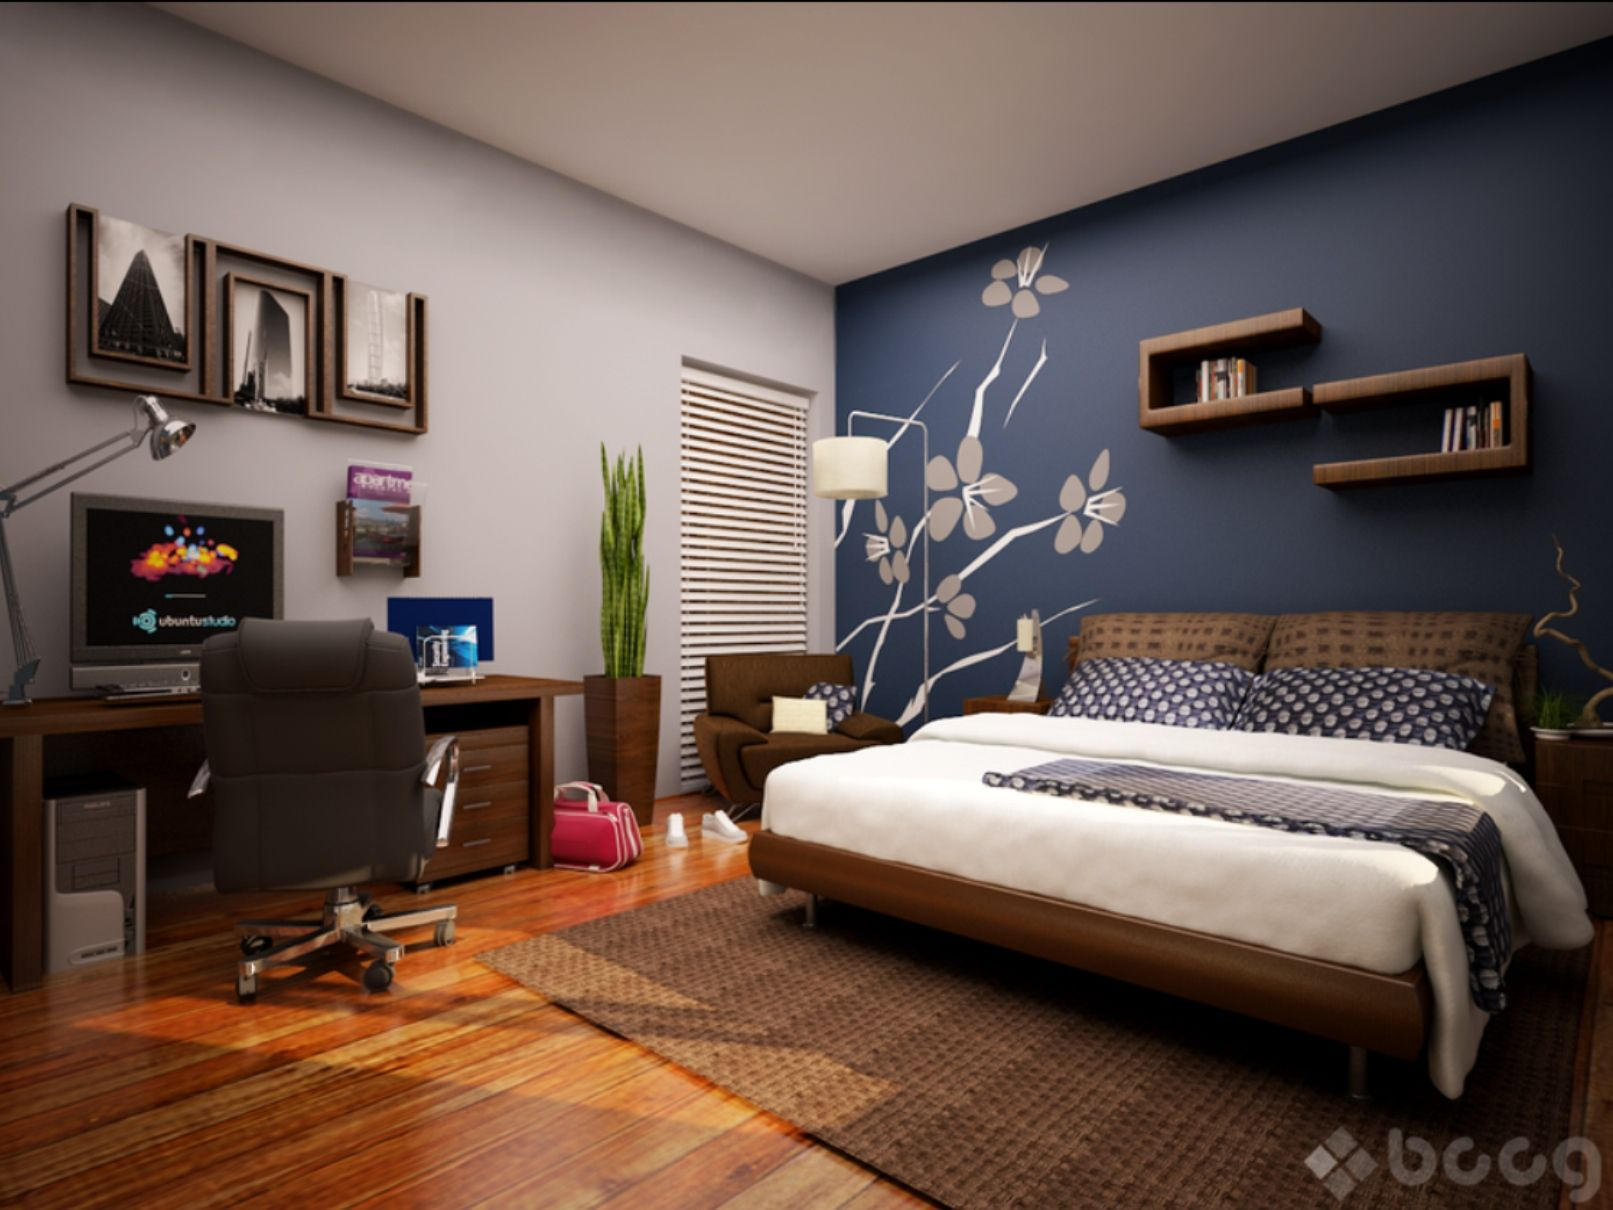 Accent wall paint ideas bedroom  Love the shade of blue with the accents  Decoración  Pinterest